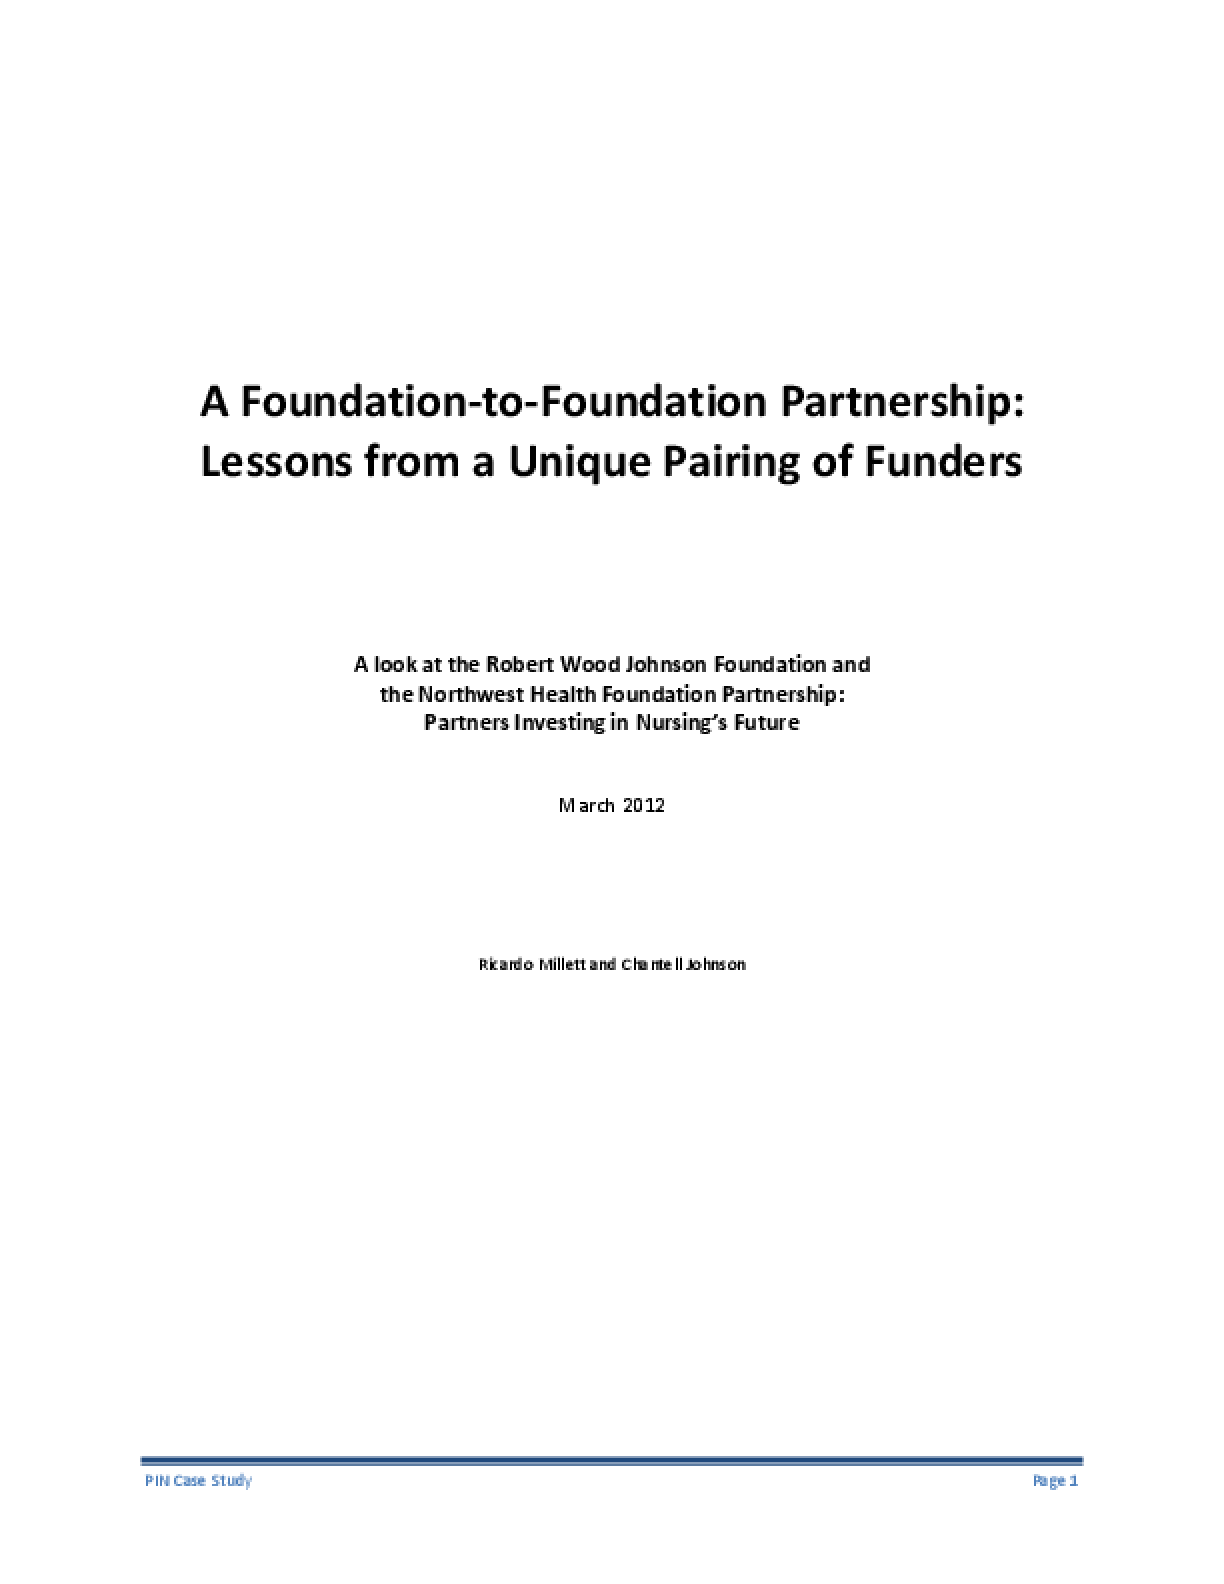 A Foundation-to-Foundation Partnership